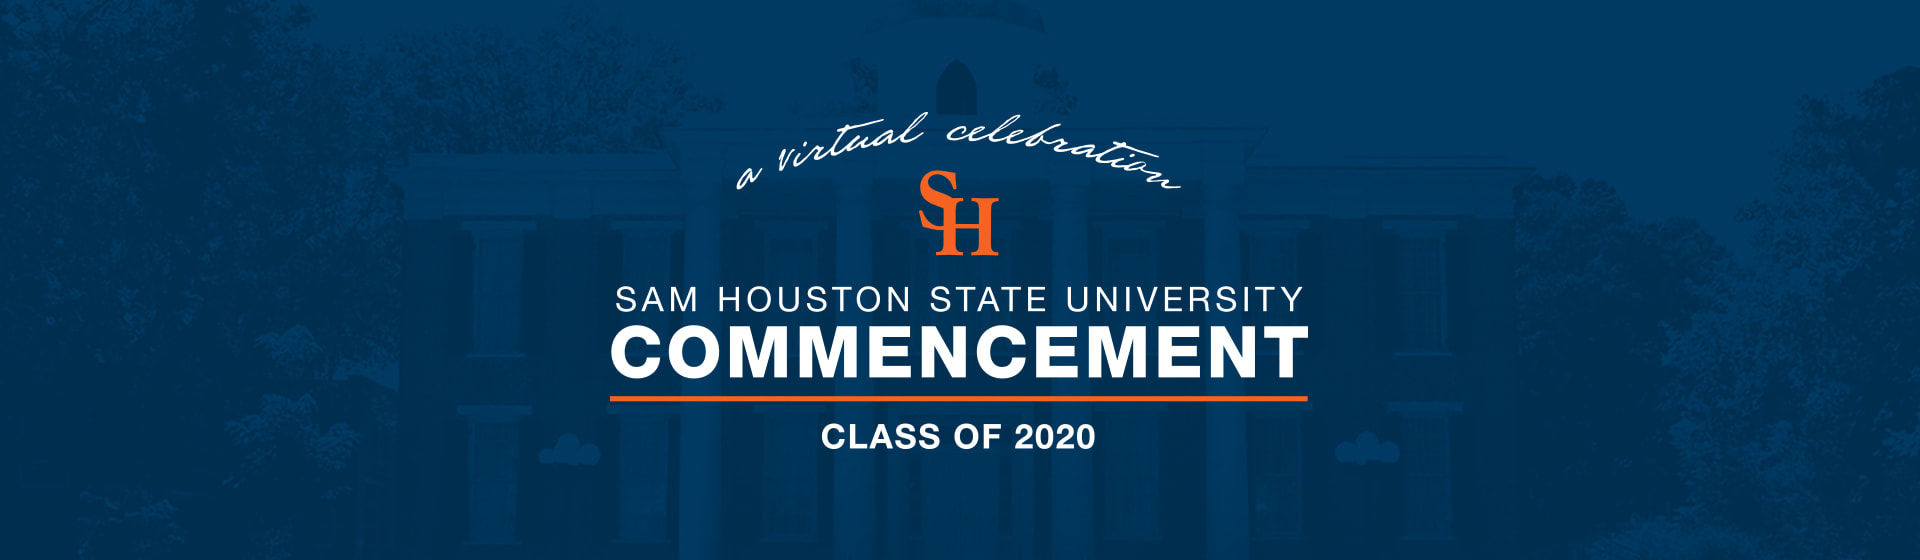 a virtual celebration Sam Houston State University Commencement Class of 2020